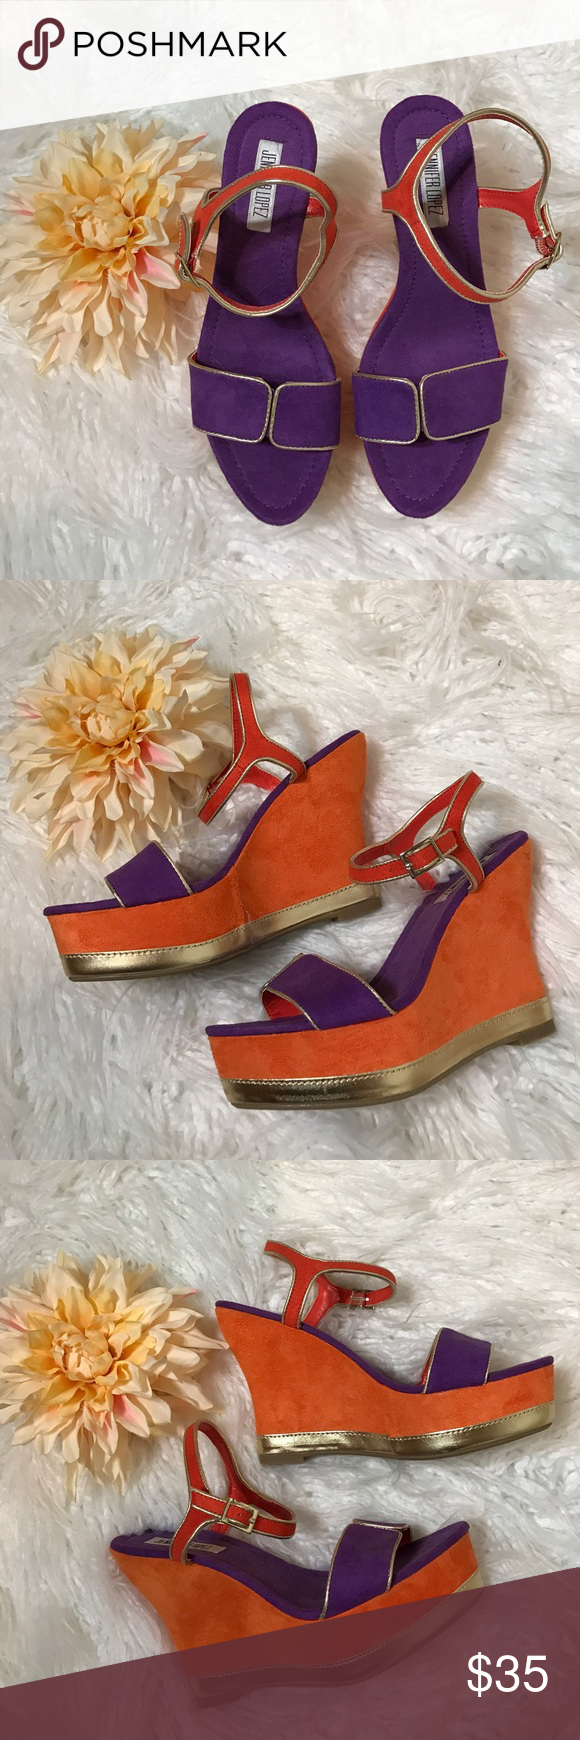 Jennifer Lopez Orange Purple Gold Wedges Love the orange purple suede mix with metallic gold on these wedge platform sandals! These are comfortable fun and sexy! You will love them! NWOT Jennifer Lopez Shoes Wedges